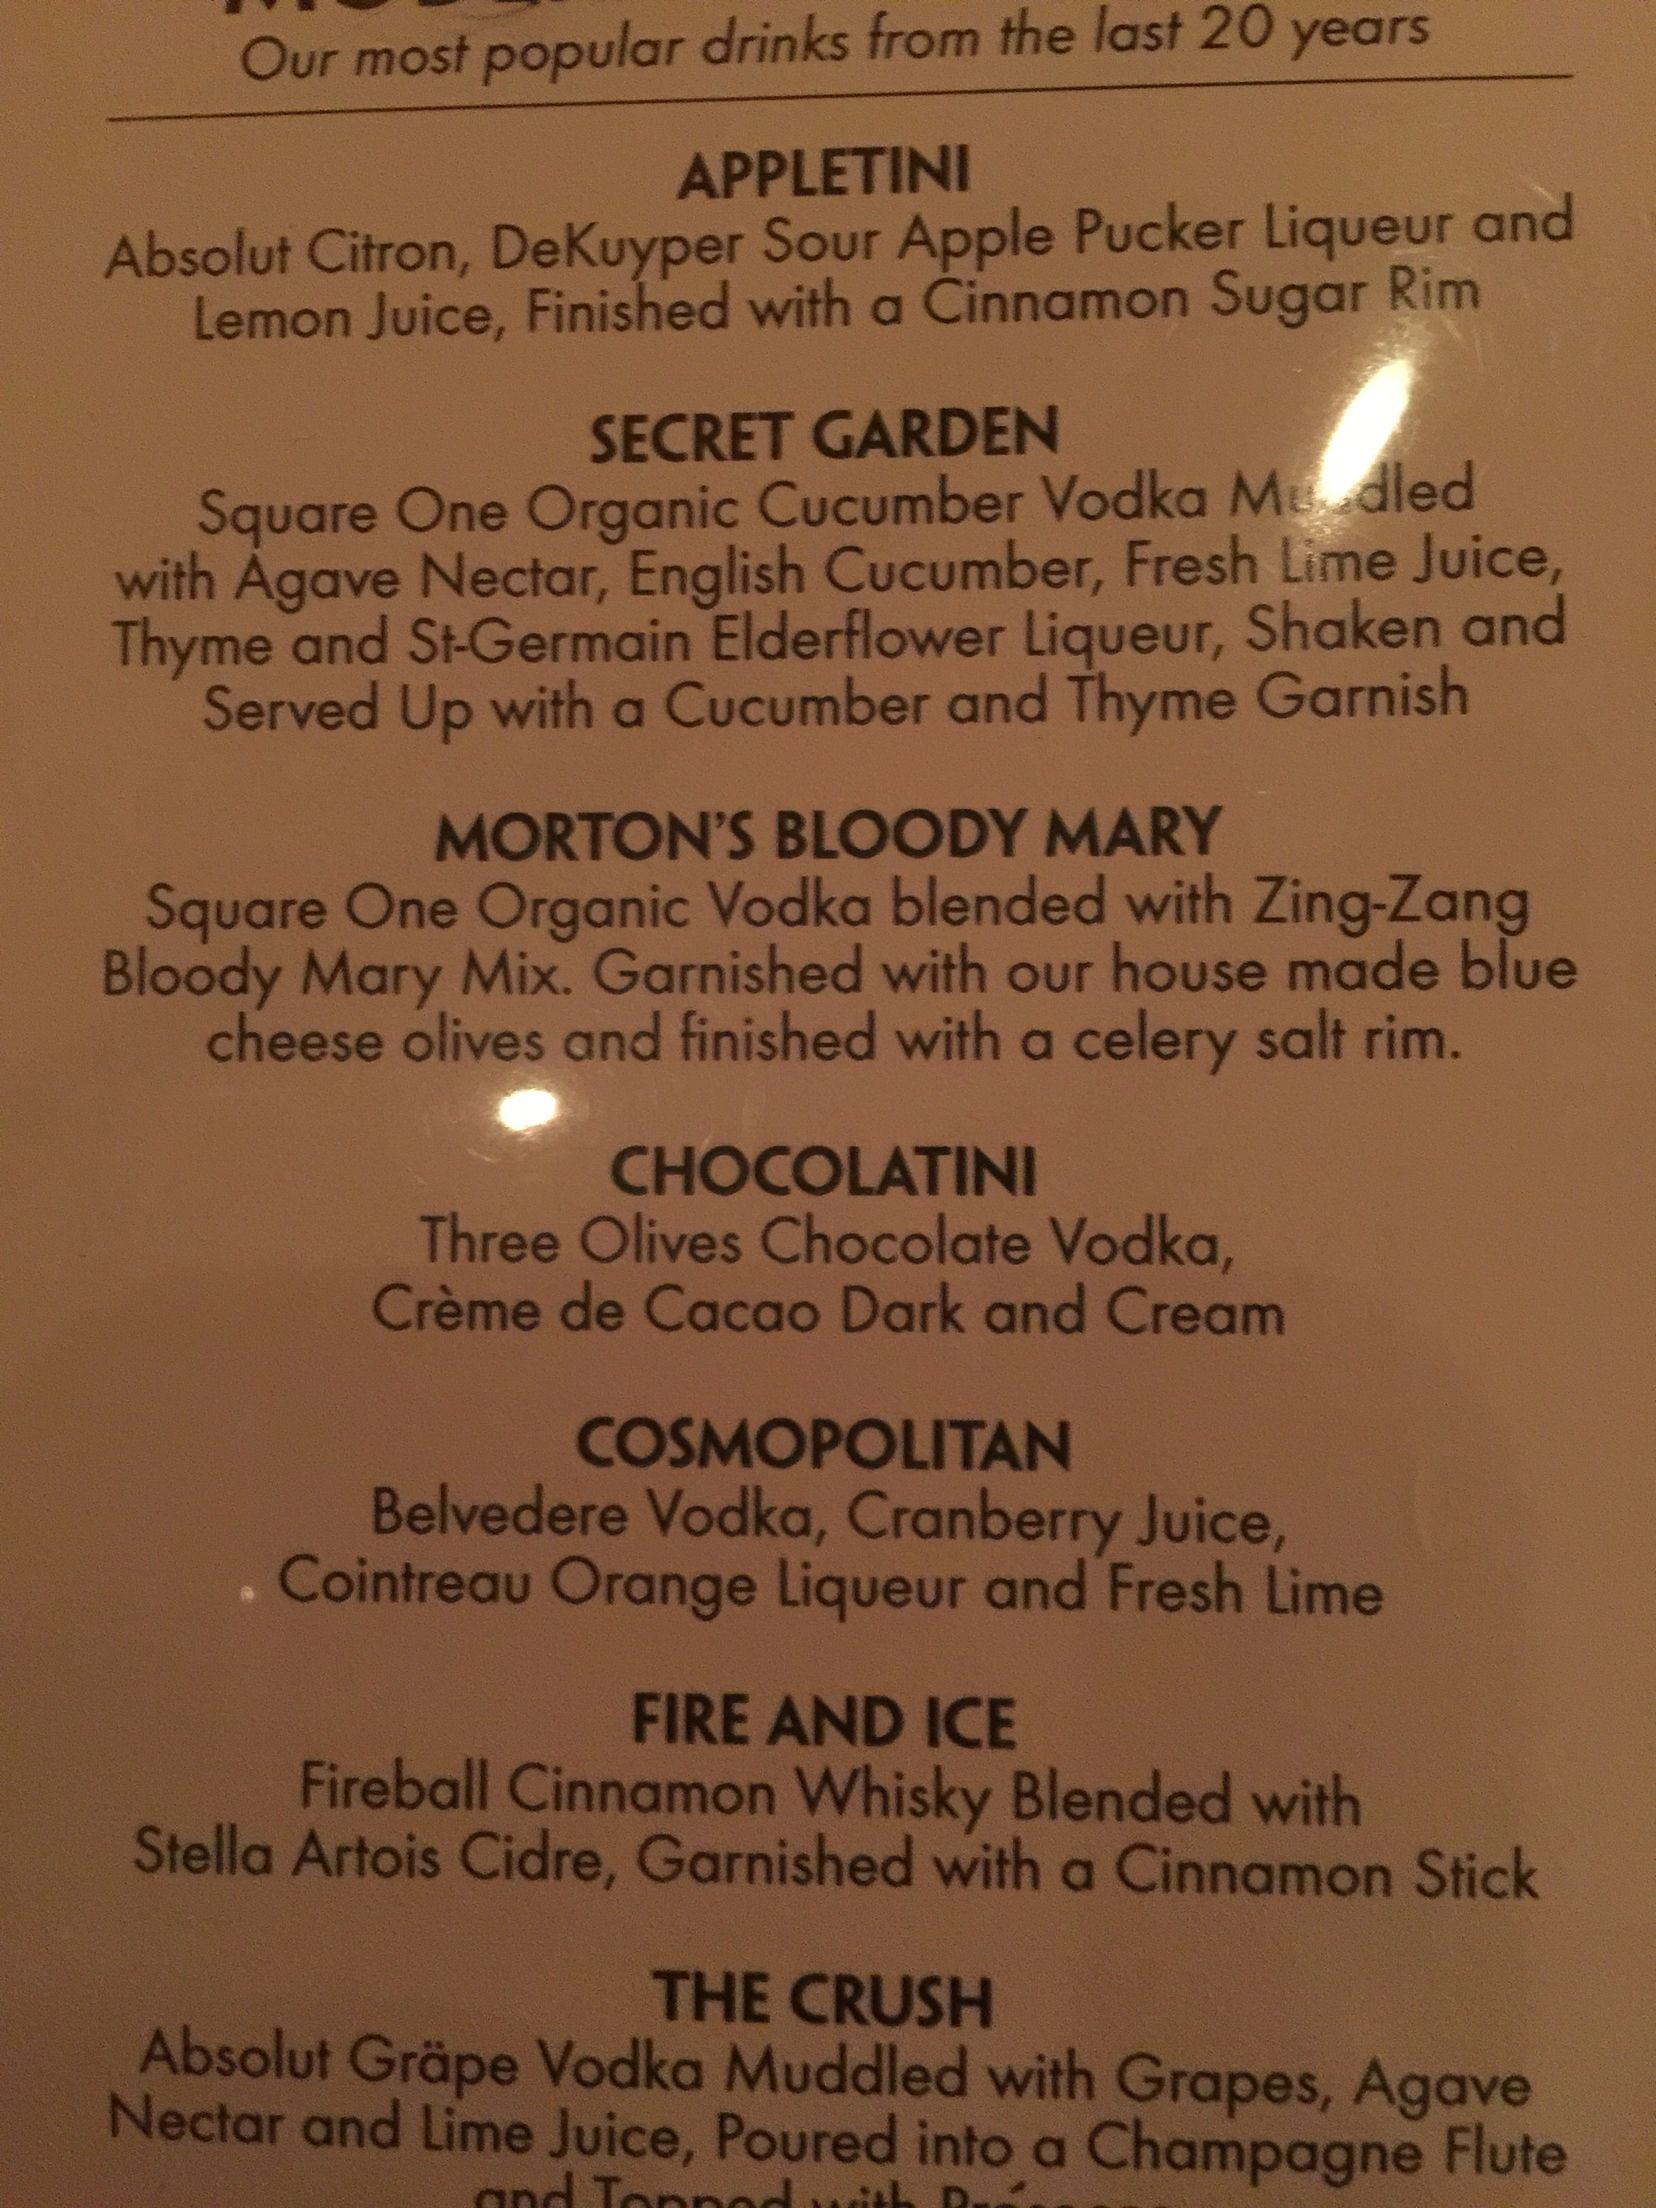 Mortons steak house drink menu. Secret Garden and the Fire & Ice are ...